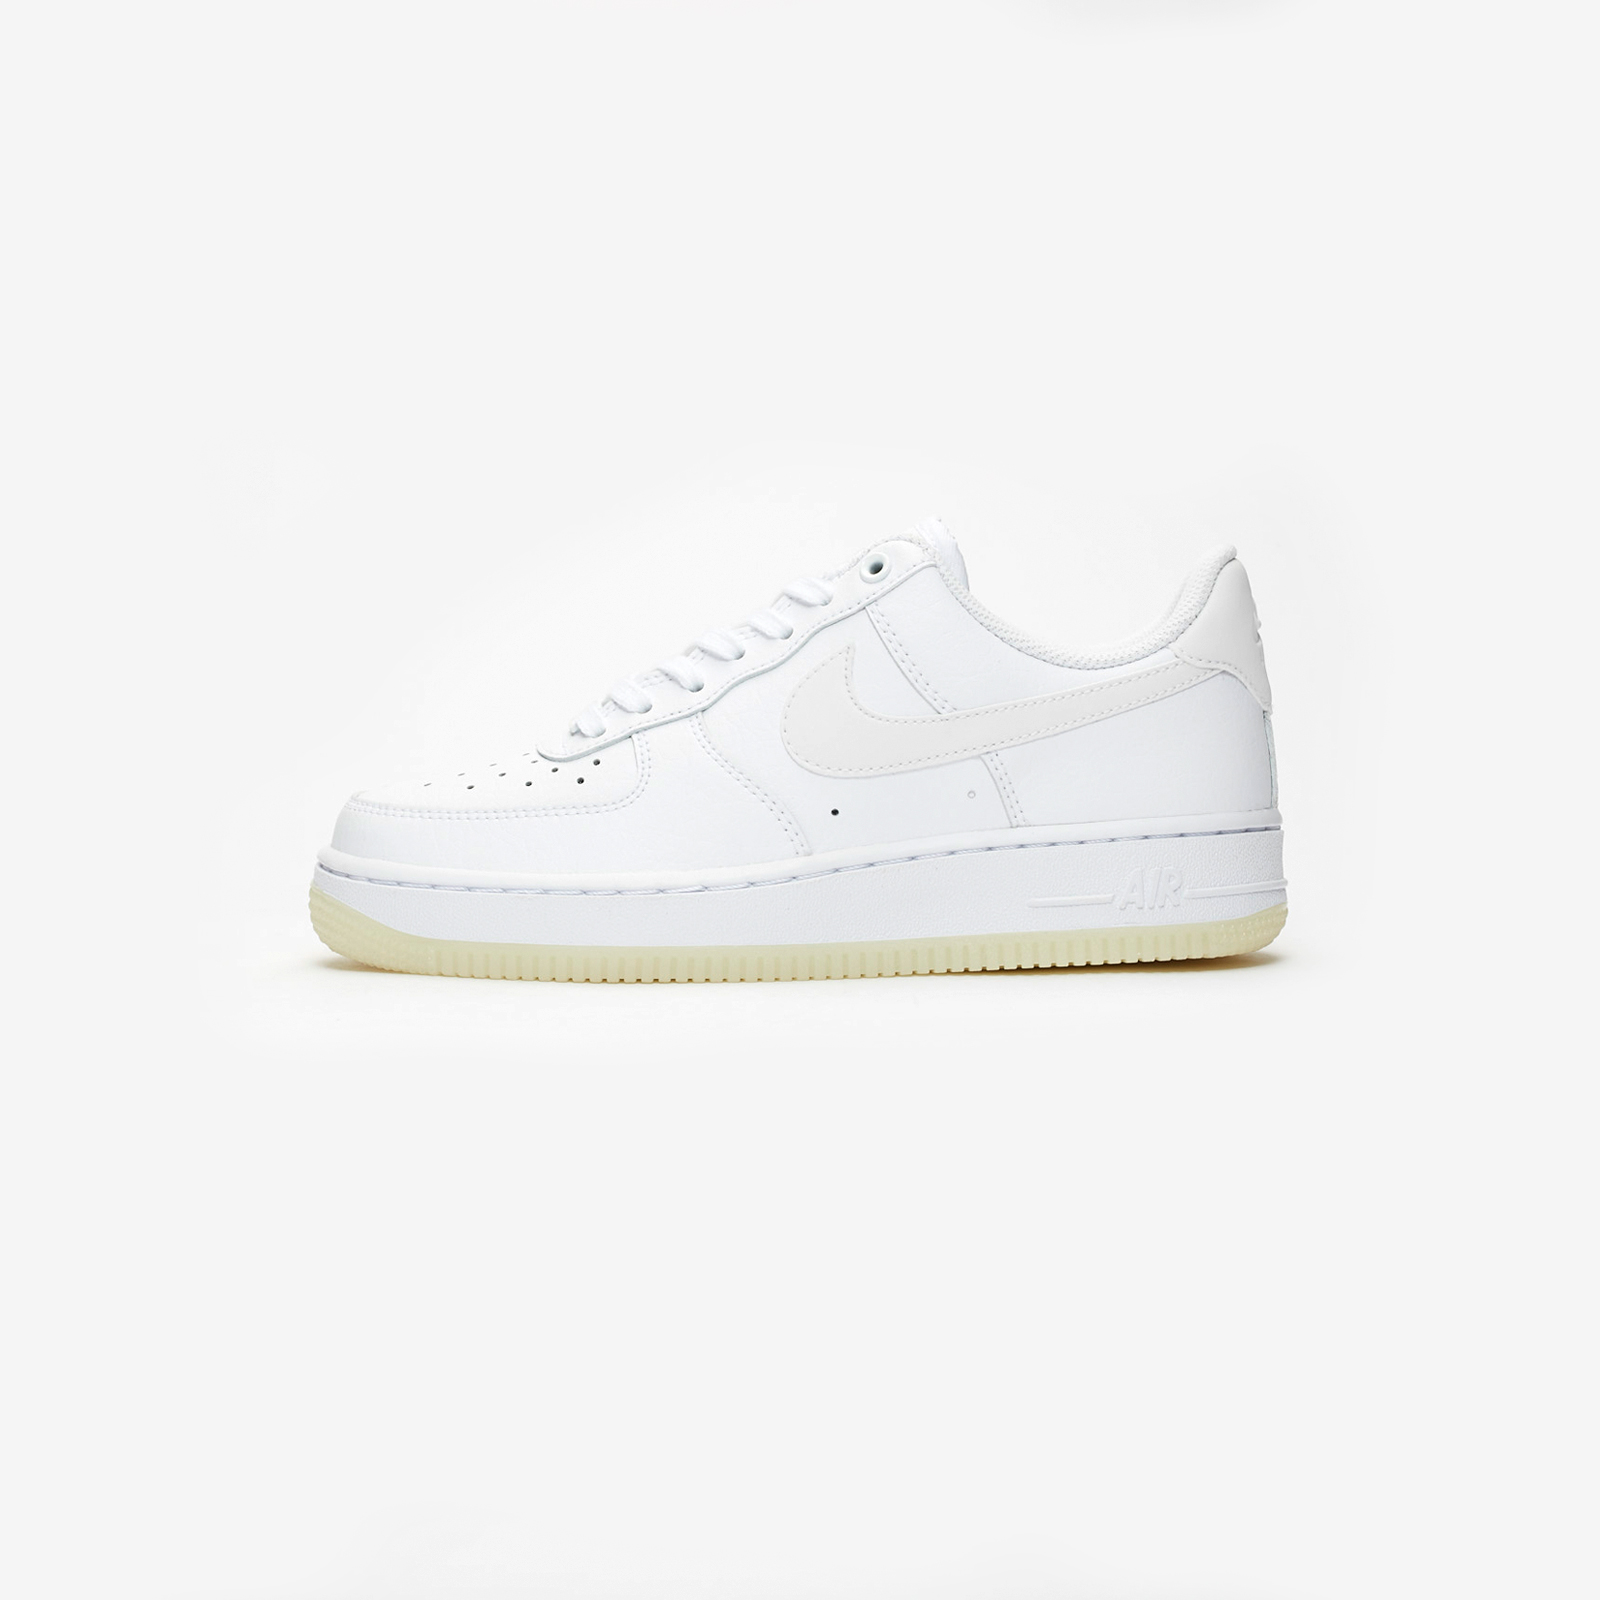 super popular 61f34 73a16 Nike Wmns Air Force 1  07 Essential - Ao2132-101 - Sneakersnstuff    sneakers   streetwear online since 1999